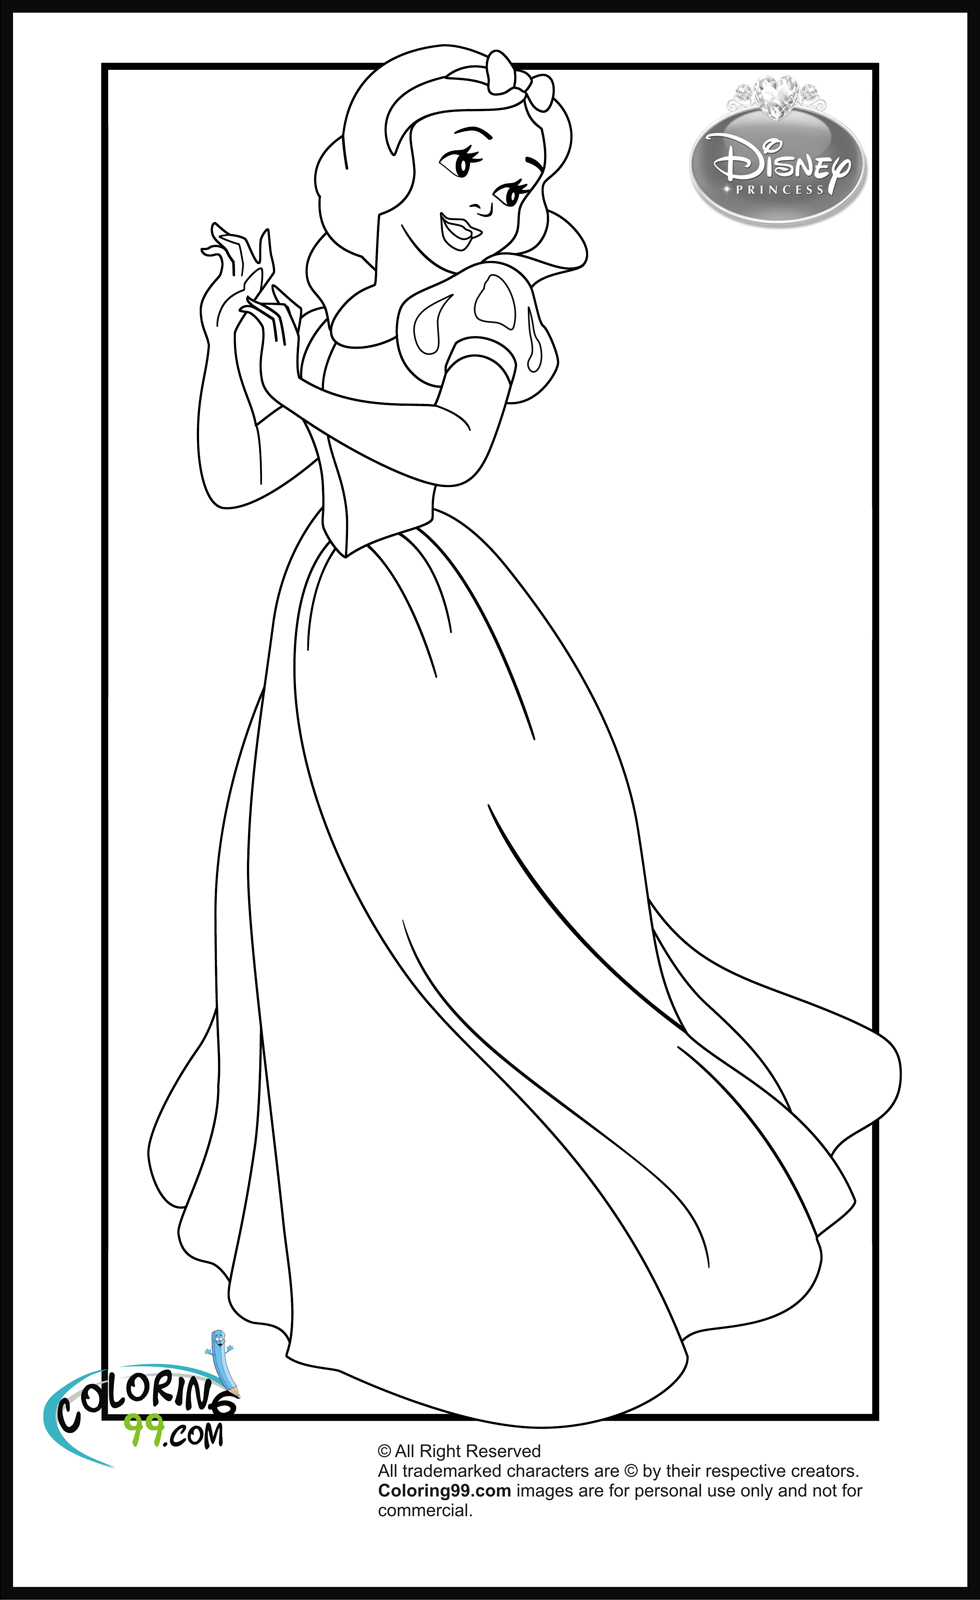 disney princess coloring worksheets disney princess halloween coloring pages coloring disney worksheets princess